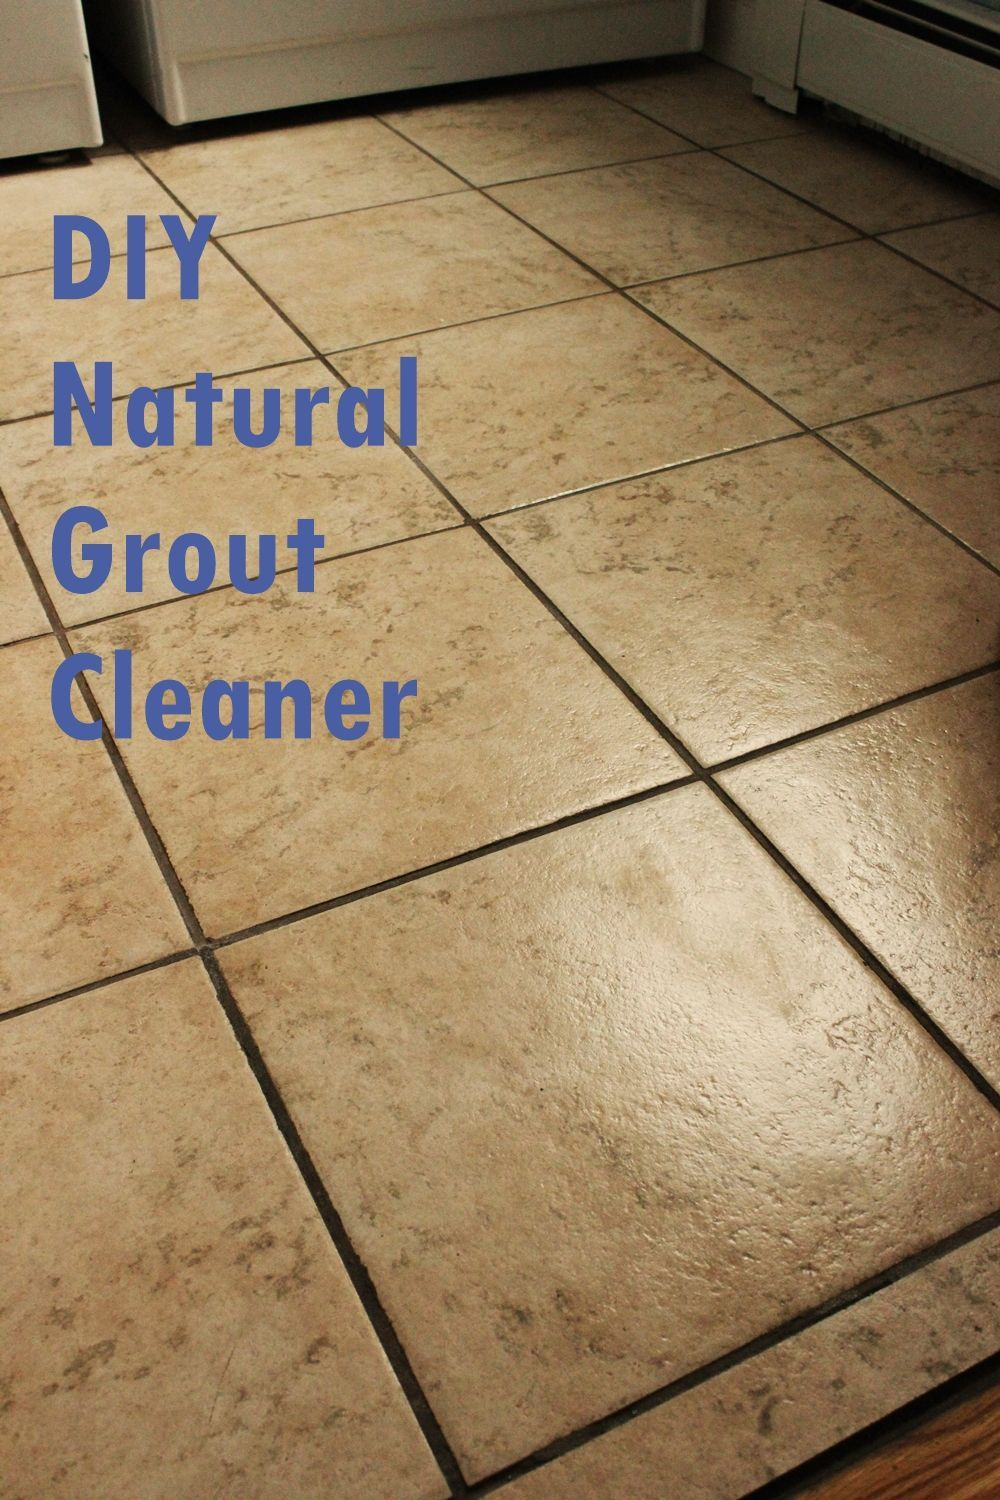 DIY Natural Grout Cleaner Tutorial